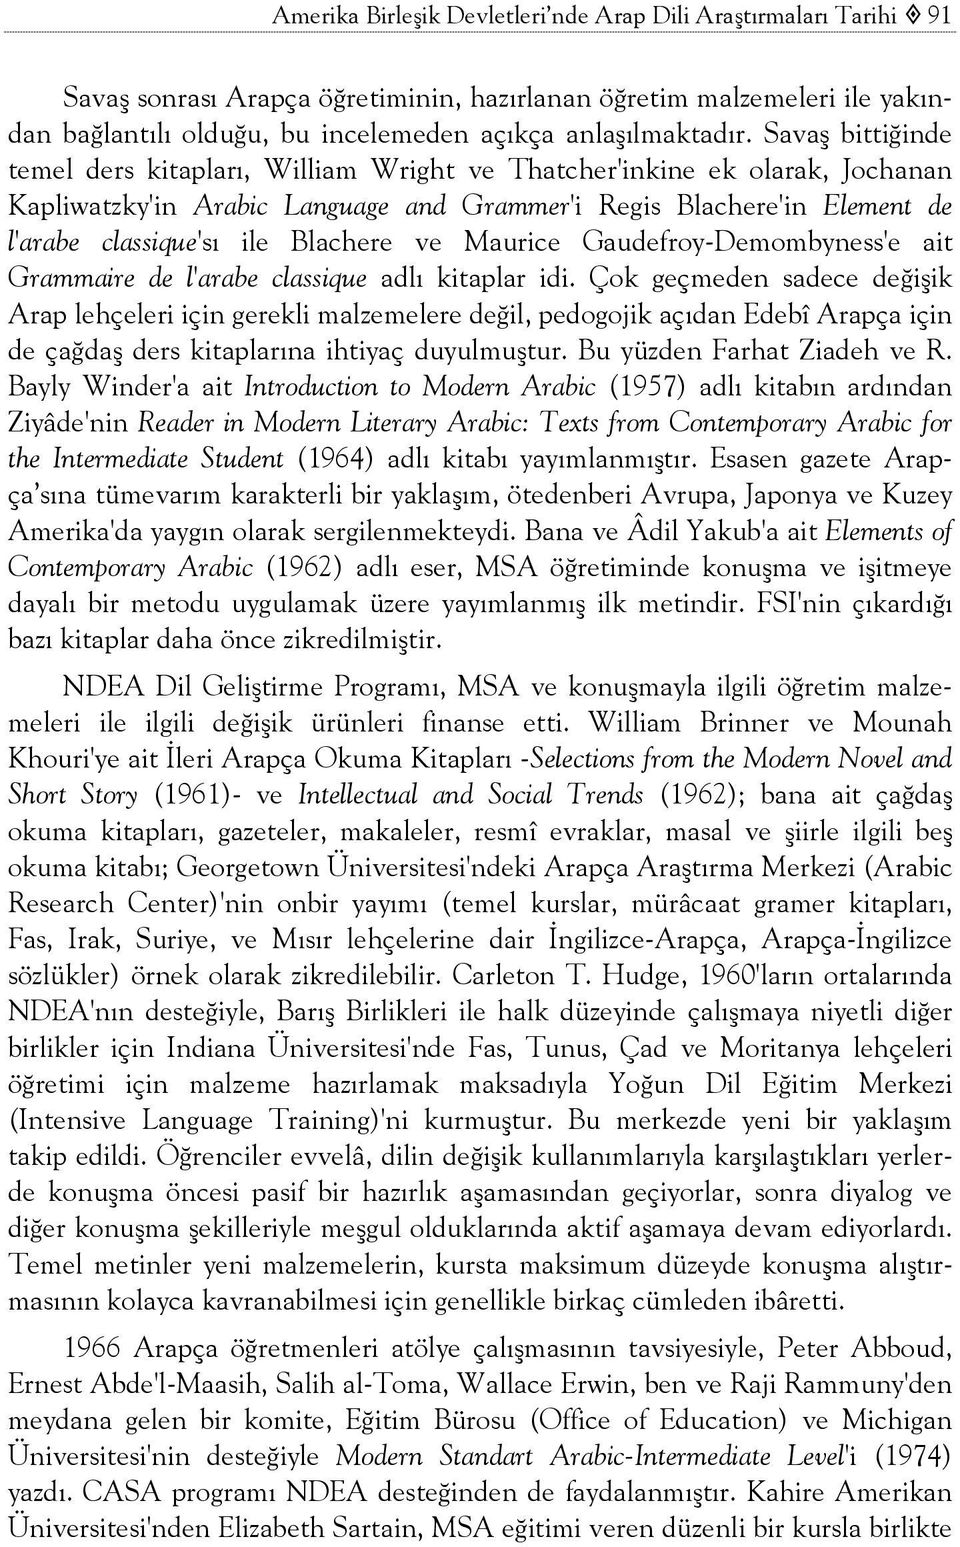 Savaş bittiğinde temel ders kitapları, William Wright ve Thatcher'inkine ek olarak, Jochanan Kapliwatzky'in Arabic Language and Grammer'i Regis Blachere'in Element de l'arabe classique'sı ile